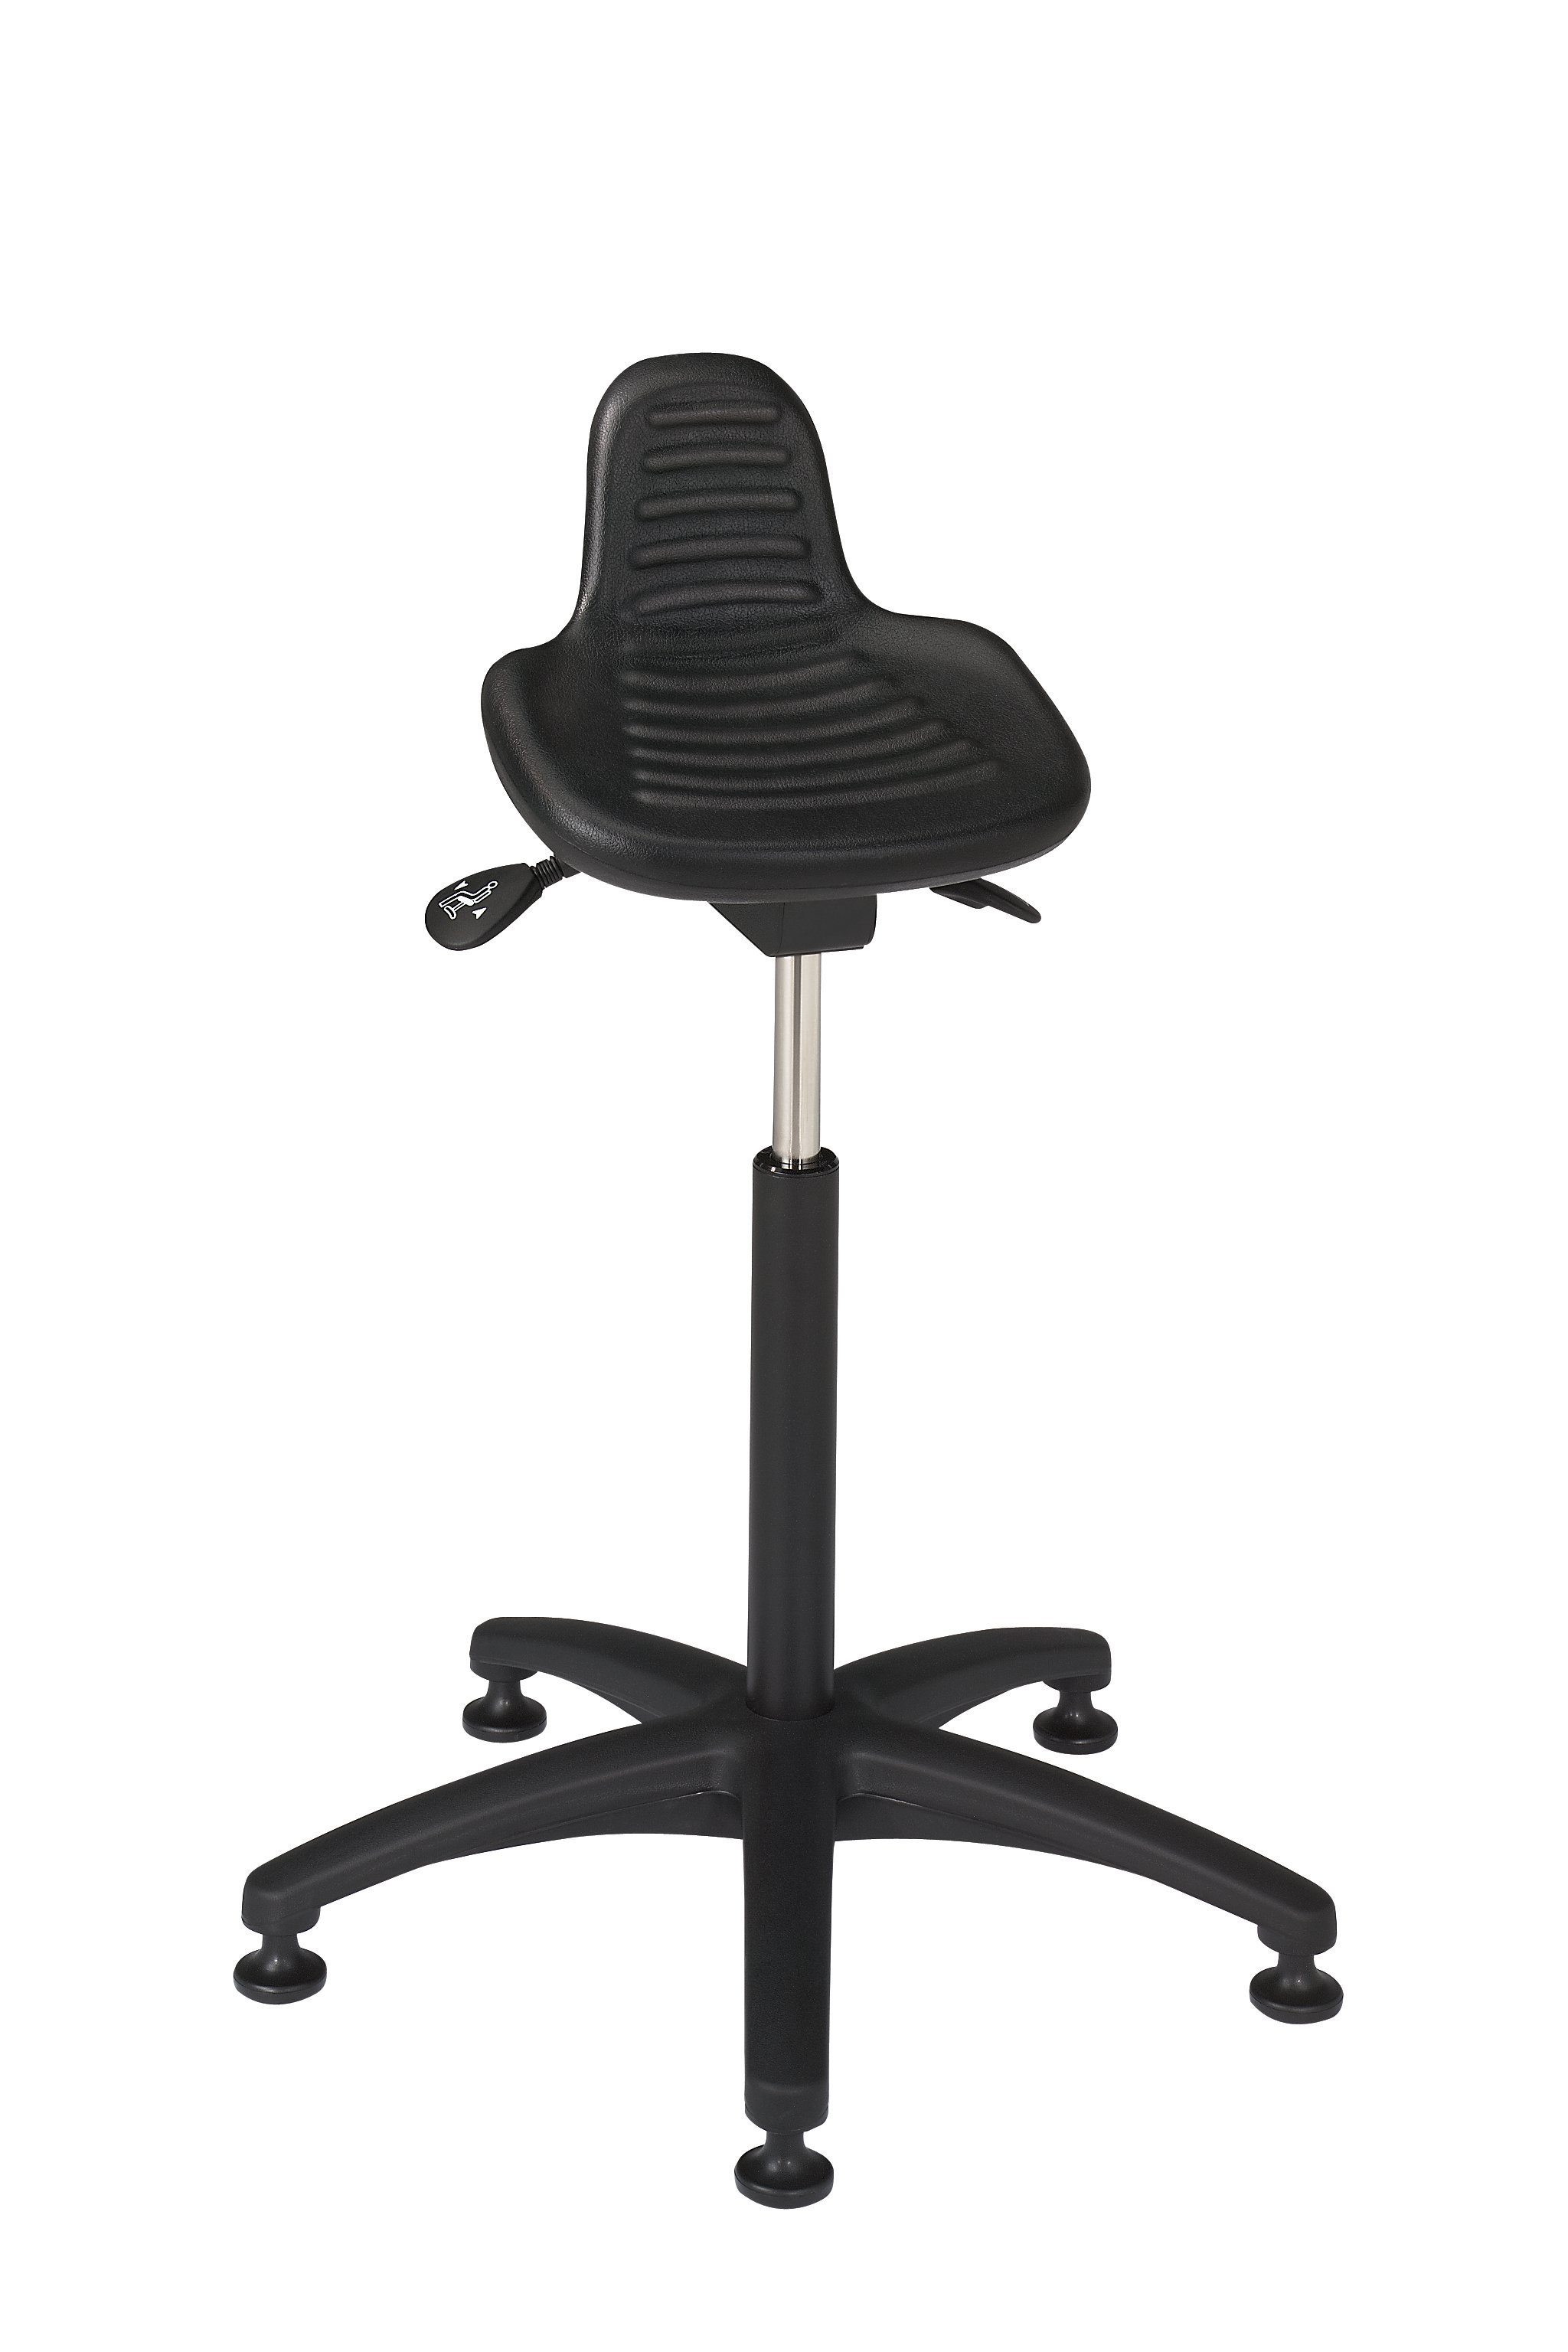 minimal chair height stand test office indonesia bevco 3505 sit and stool 22 quot 32